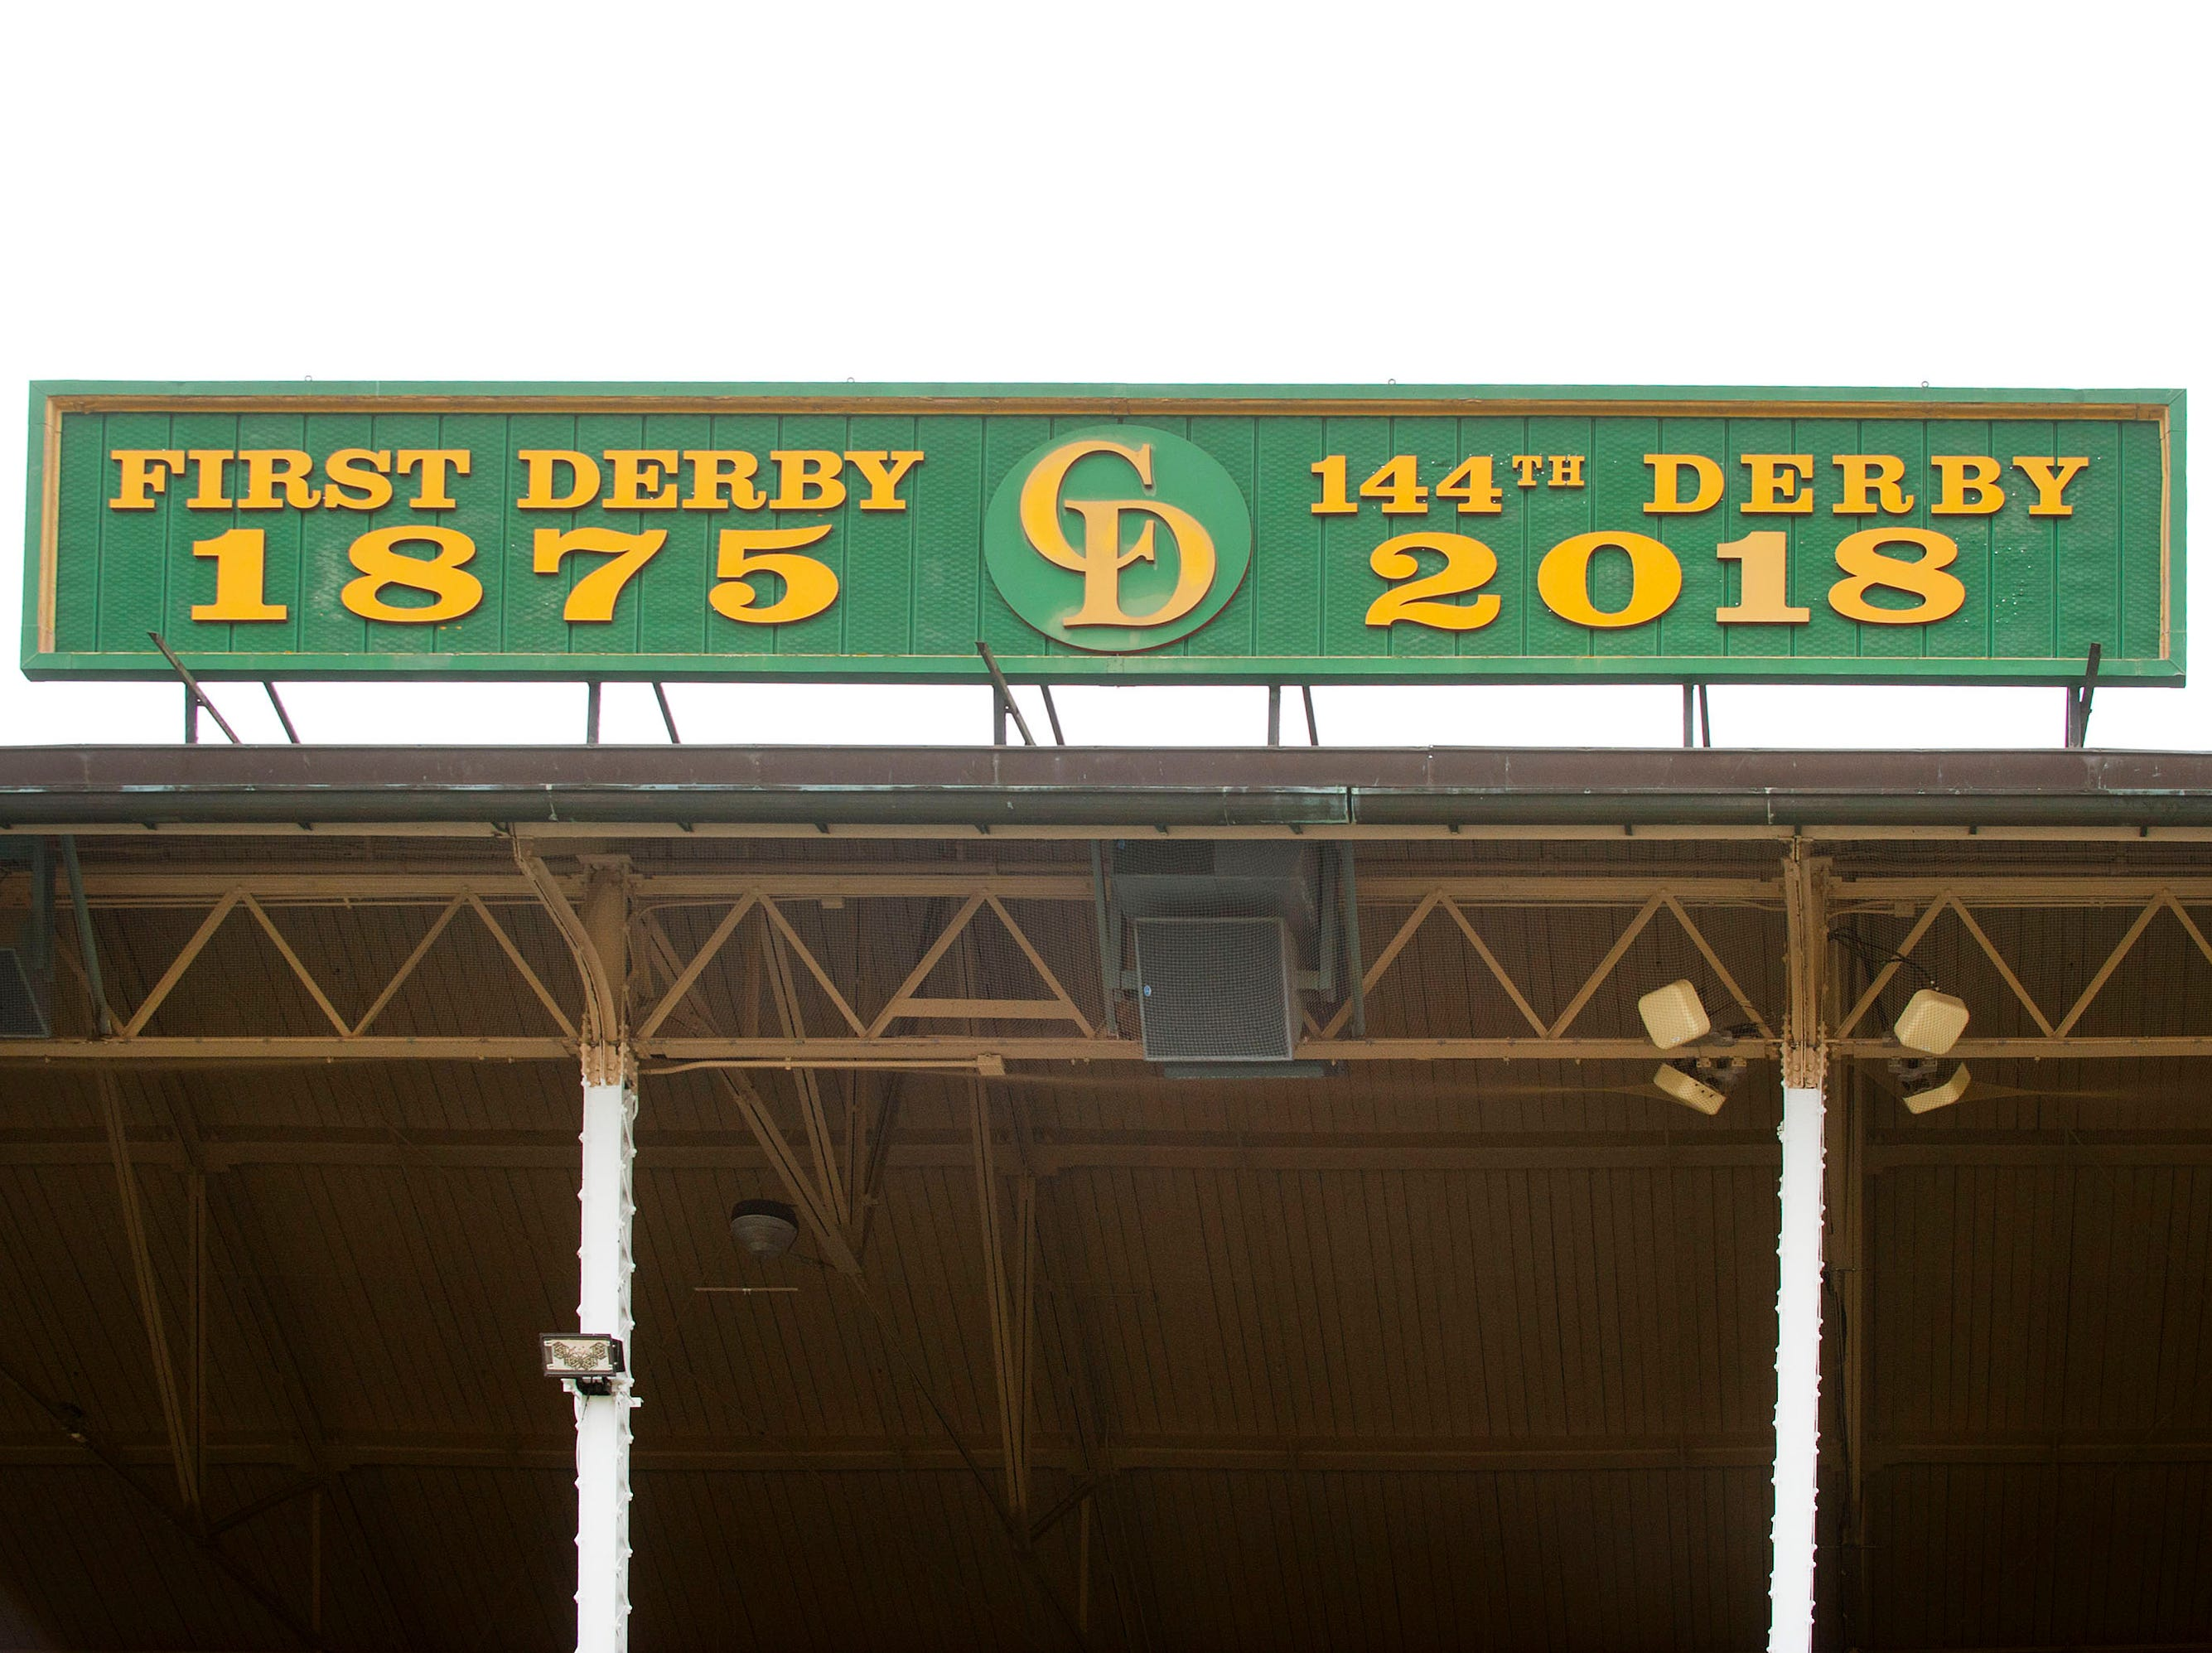 The Churchill Downs sign hung between the twin spires signifying last year's running of the Kentucky Derby. The sign was updated today to reflect the new year of racing.